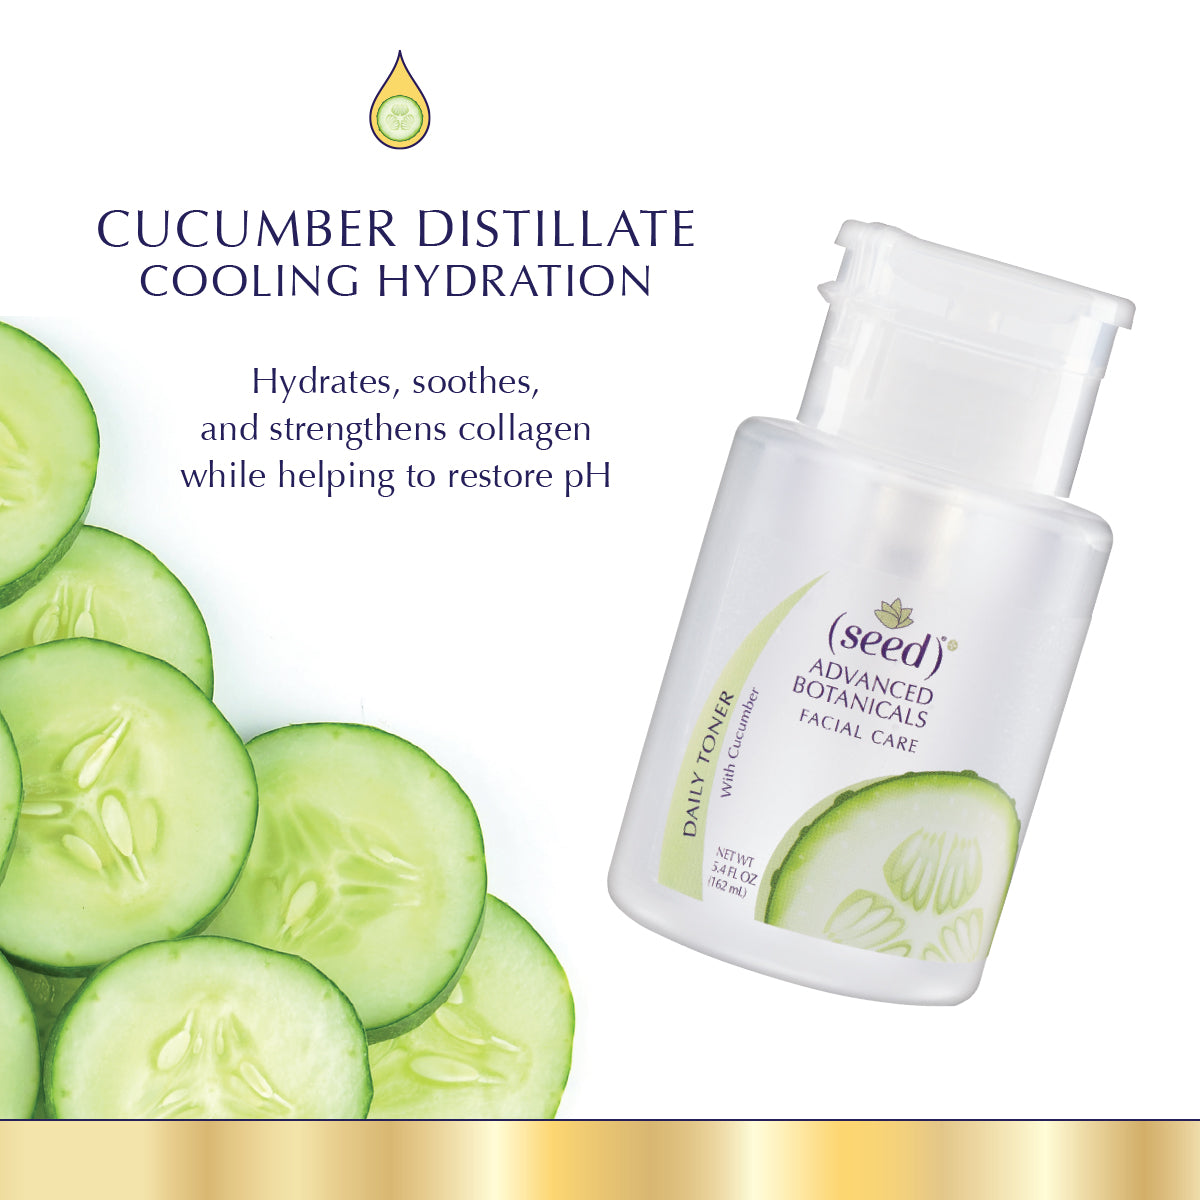 Seed Advanced Botanicals Cucumber Facial Toner features pure Cucumber distillate